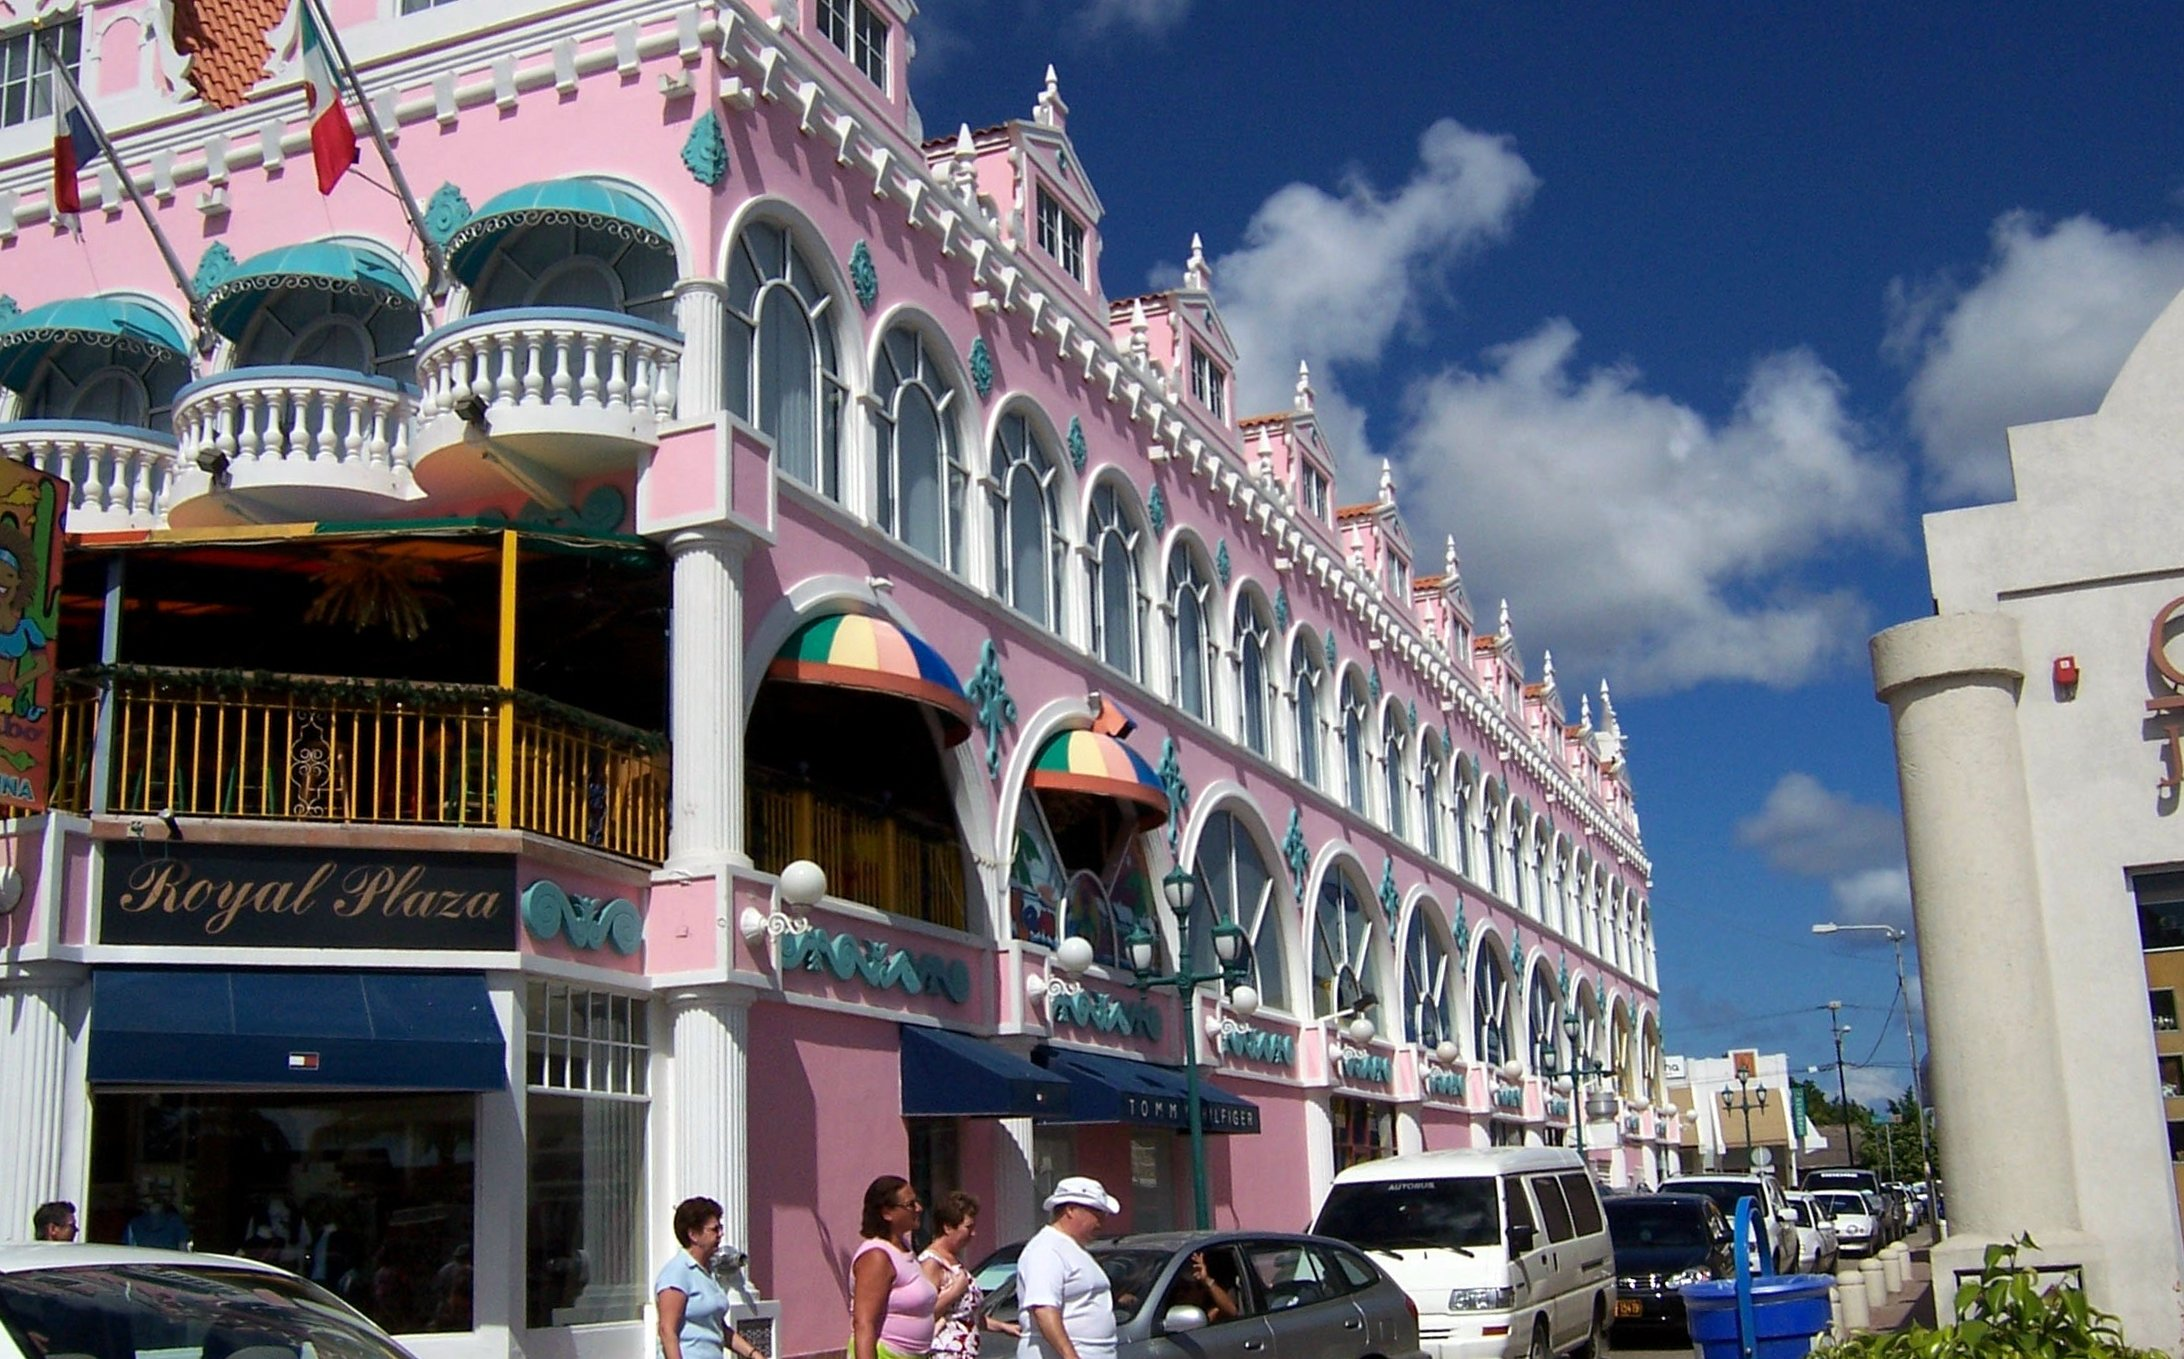 The Royal Plaza in Oranjestad